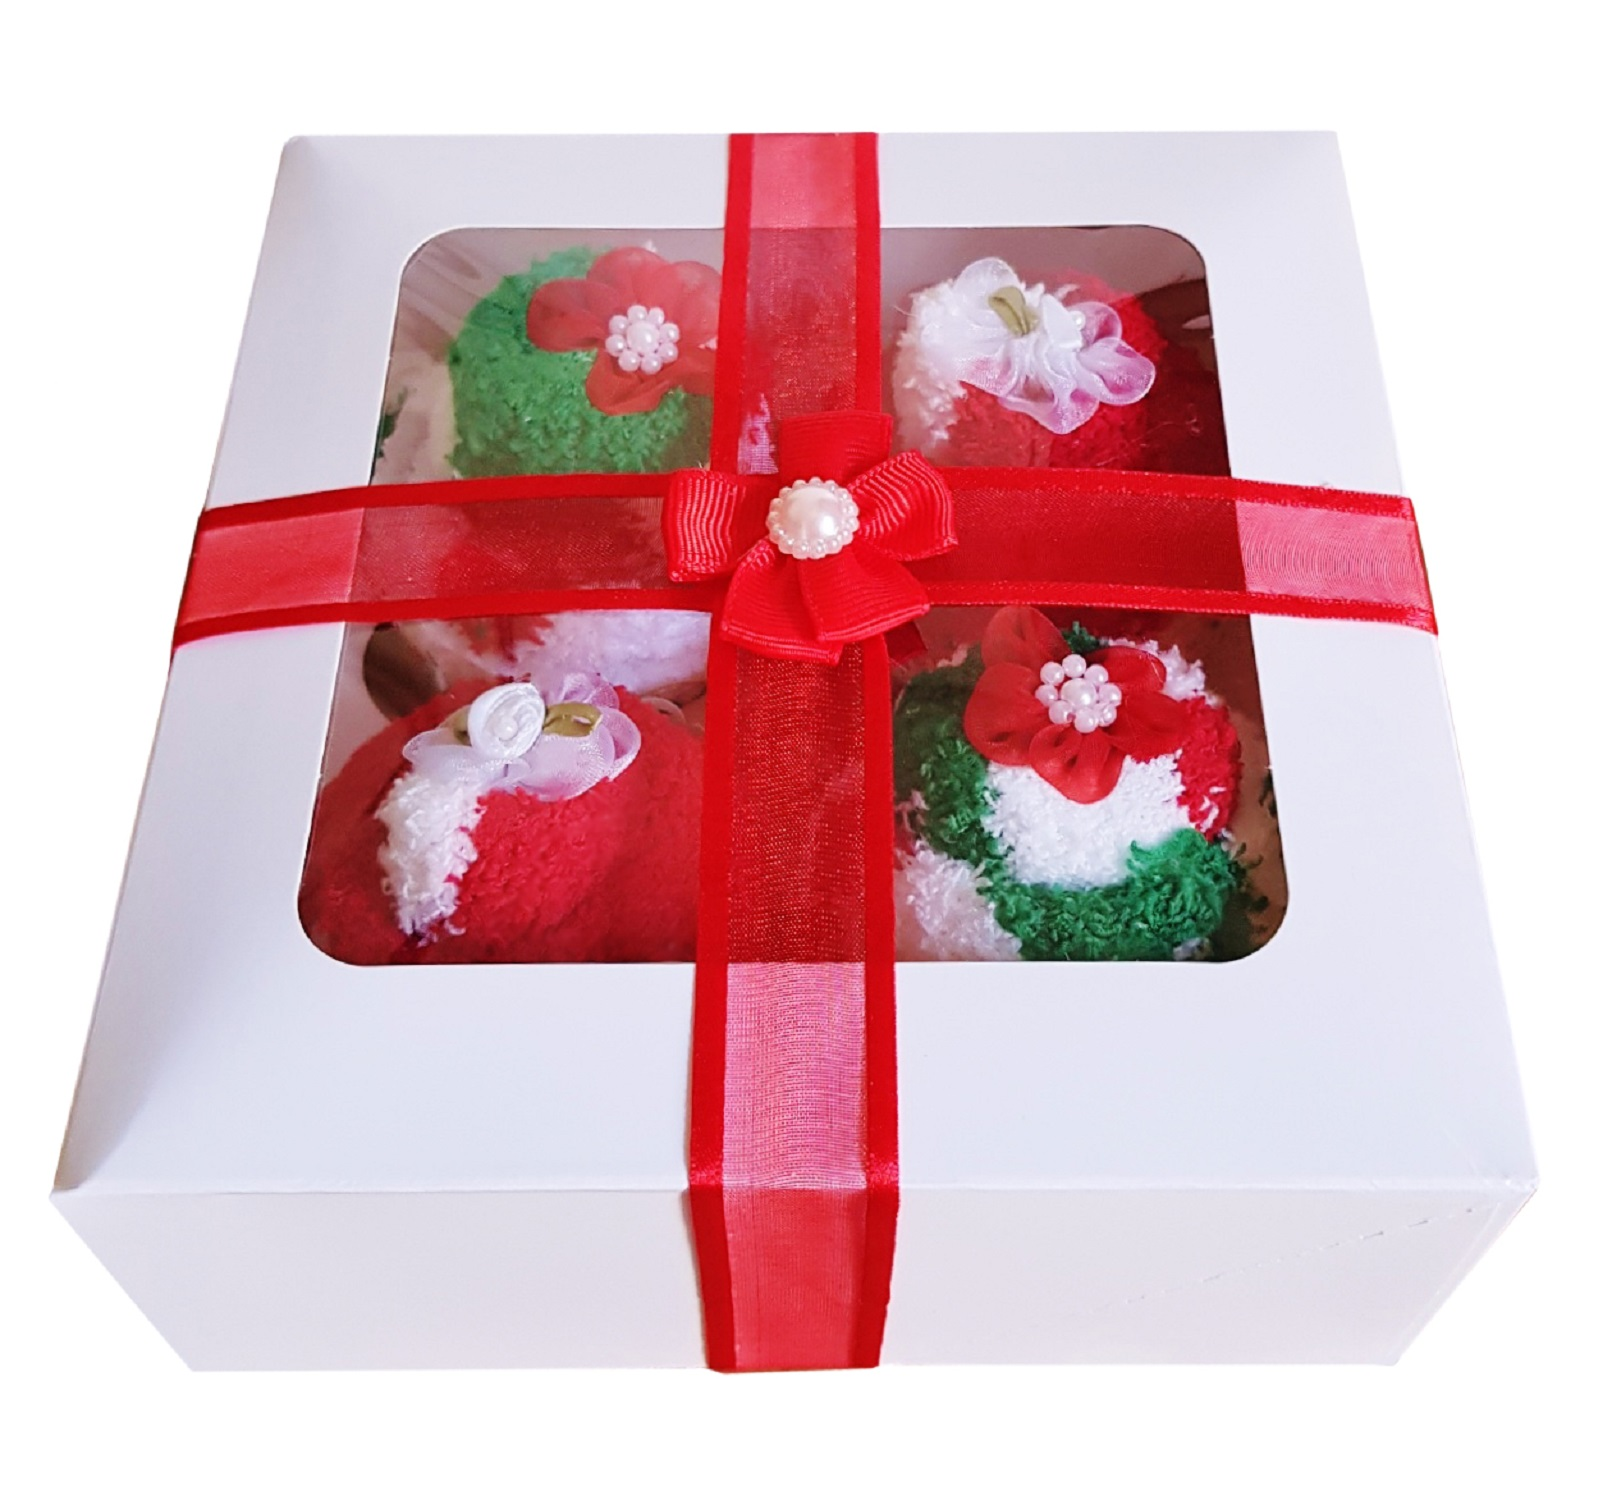 Women's ' Christmas Cozy Sock' Cupcakes, Red Ribbon Gift Box